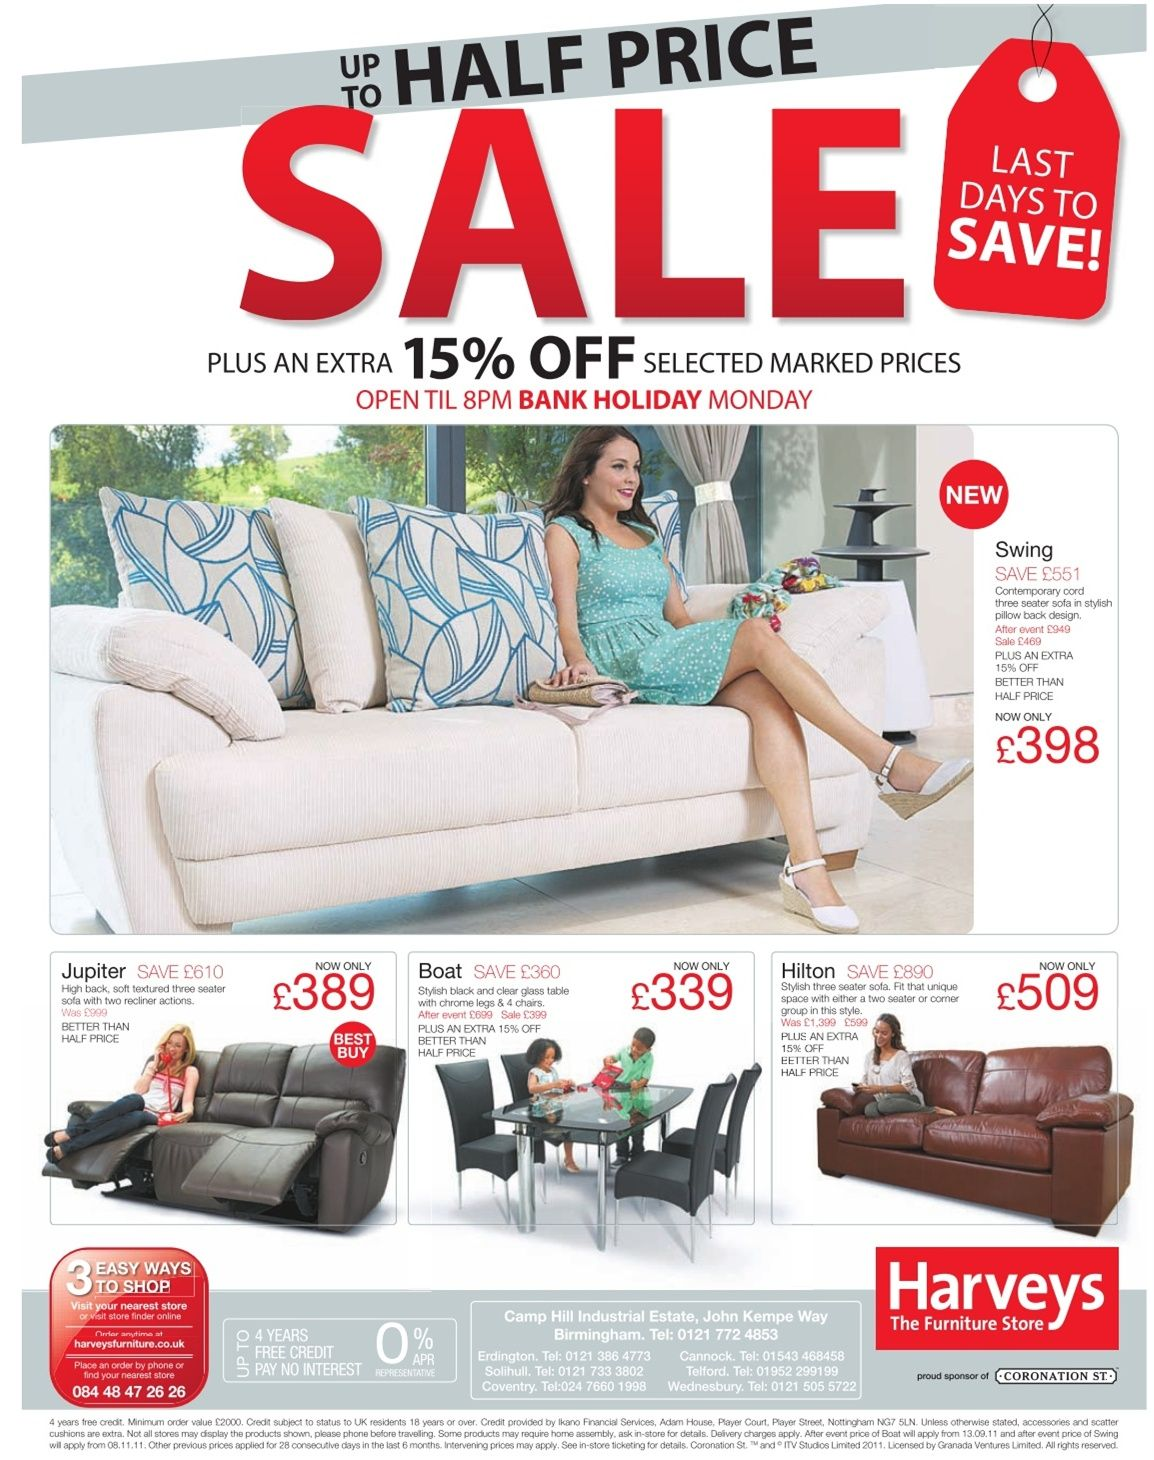 city furniture 141jpg 11541460 Furniture Ad Pinterest Ads